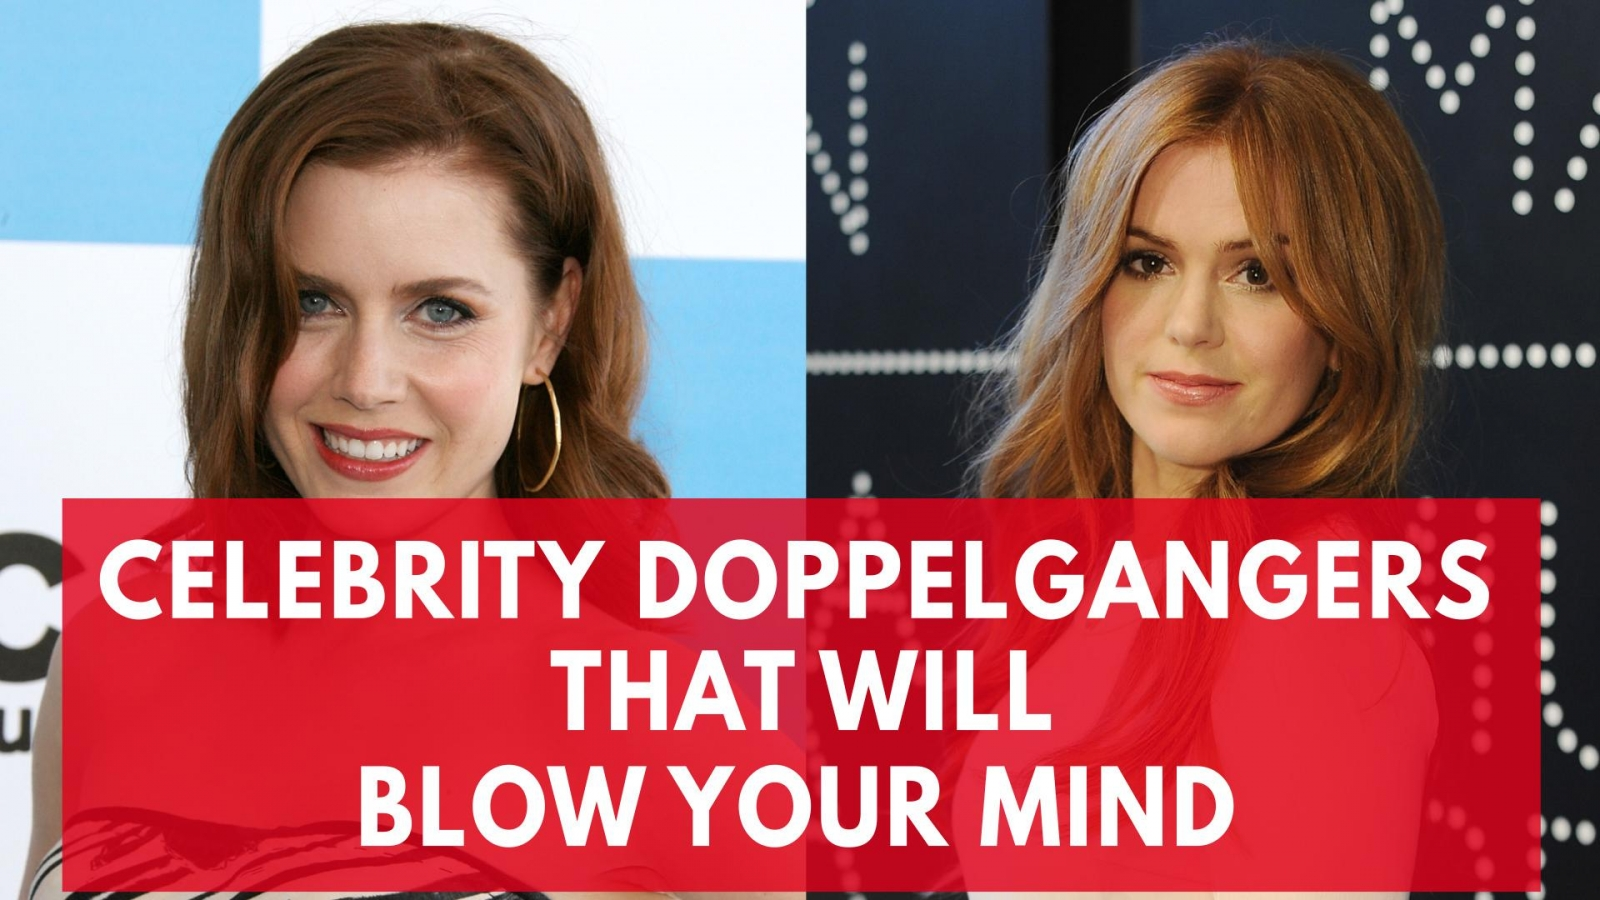 Celebrity dopplegangers that will blow your mind